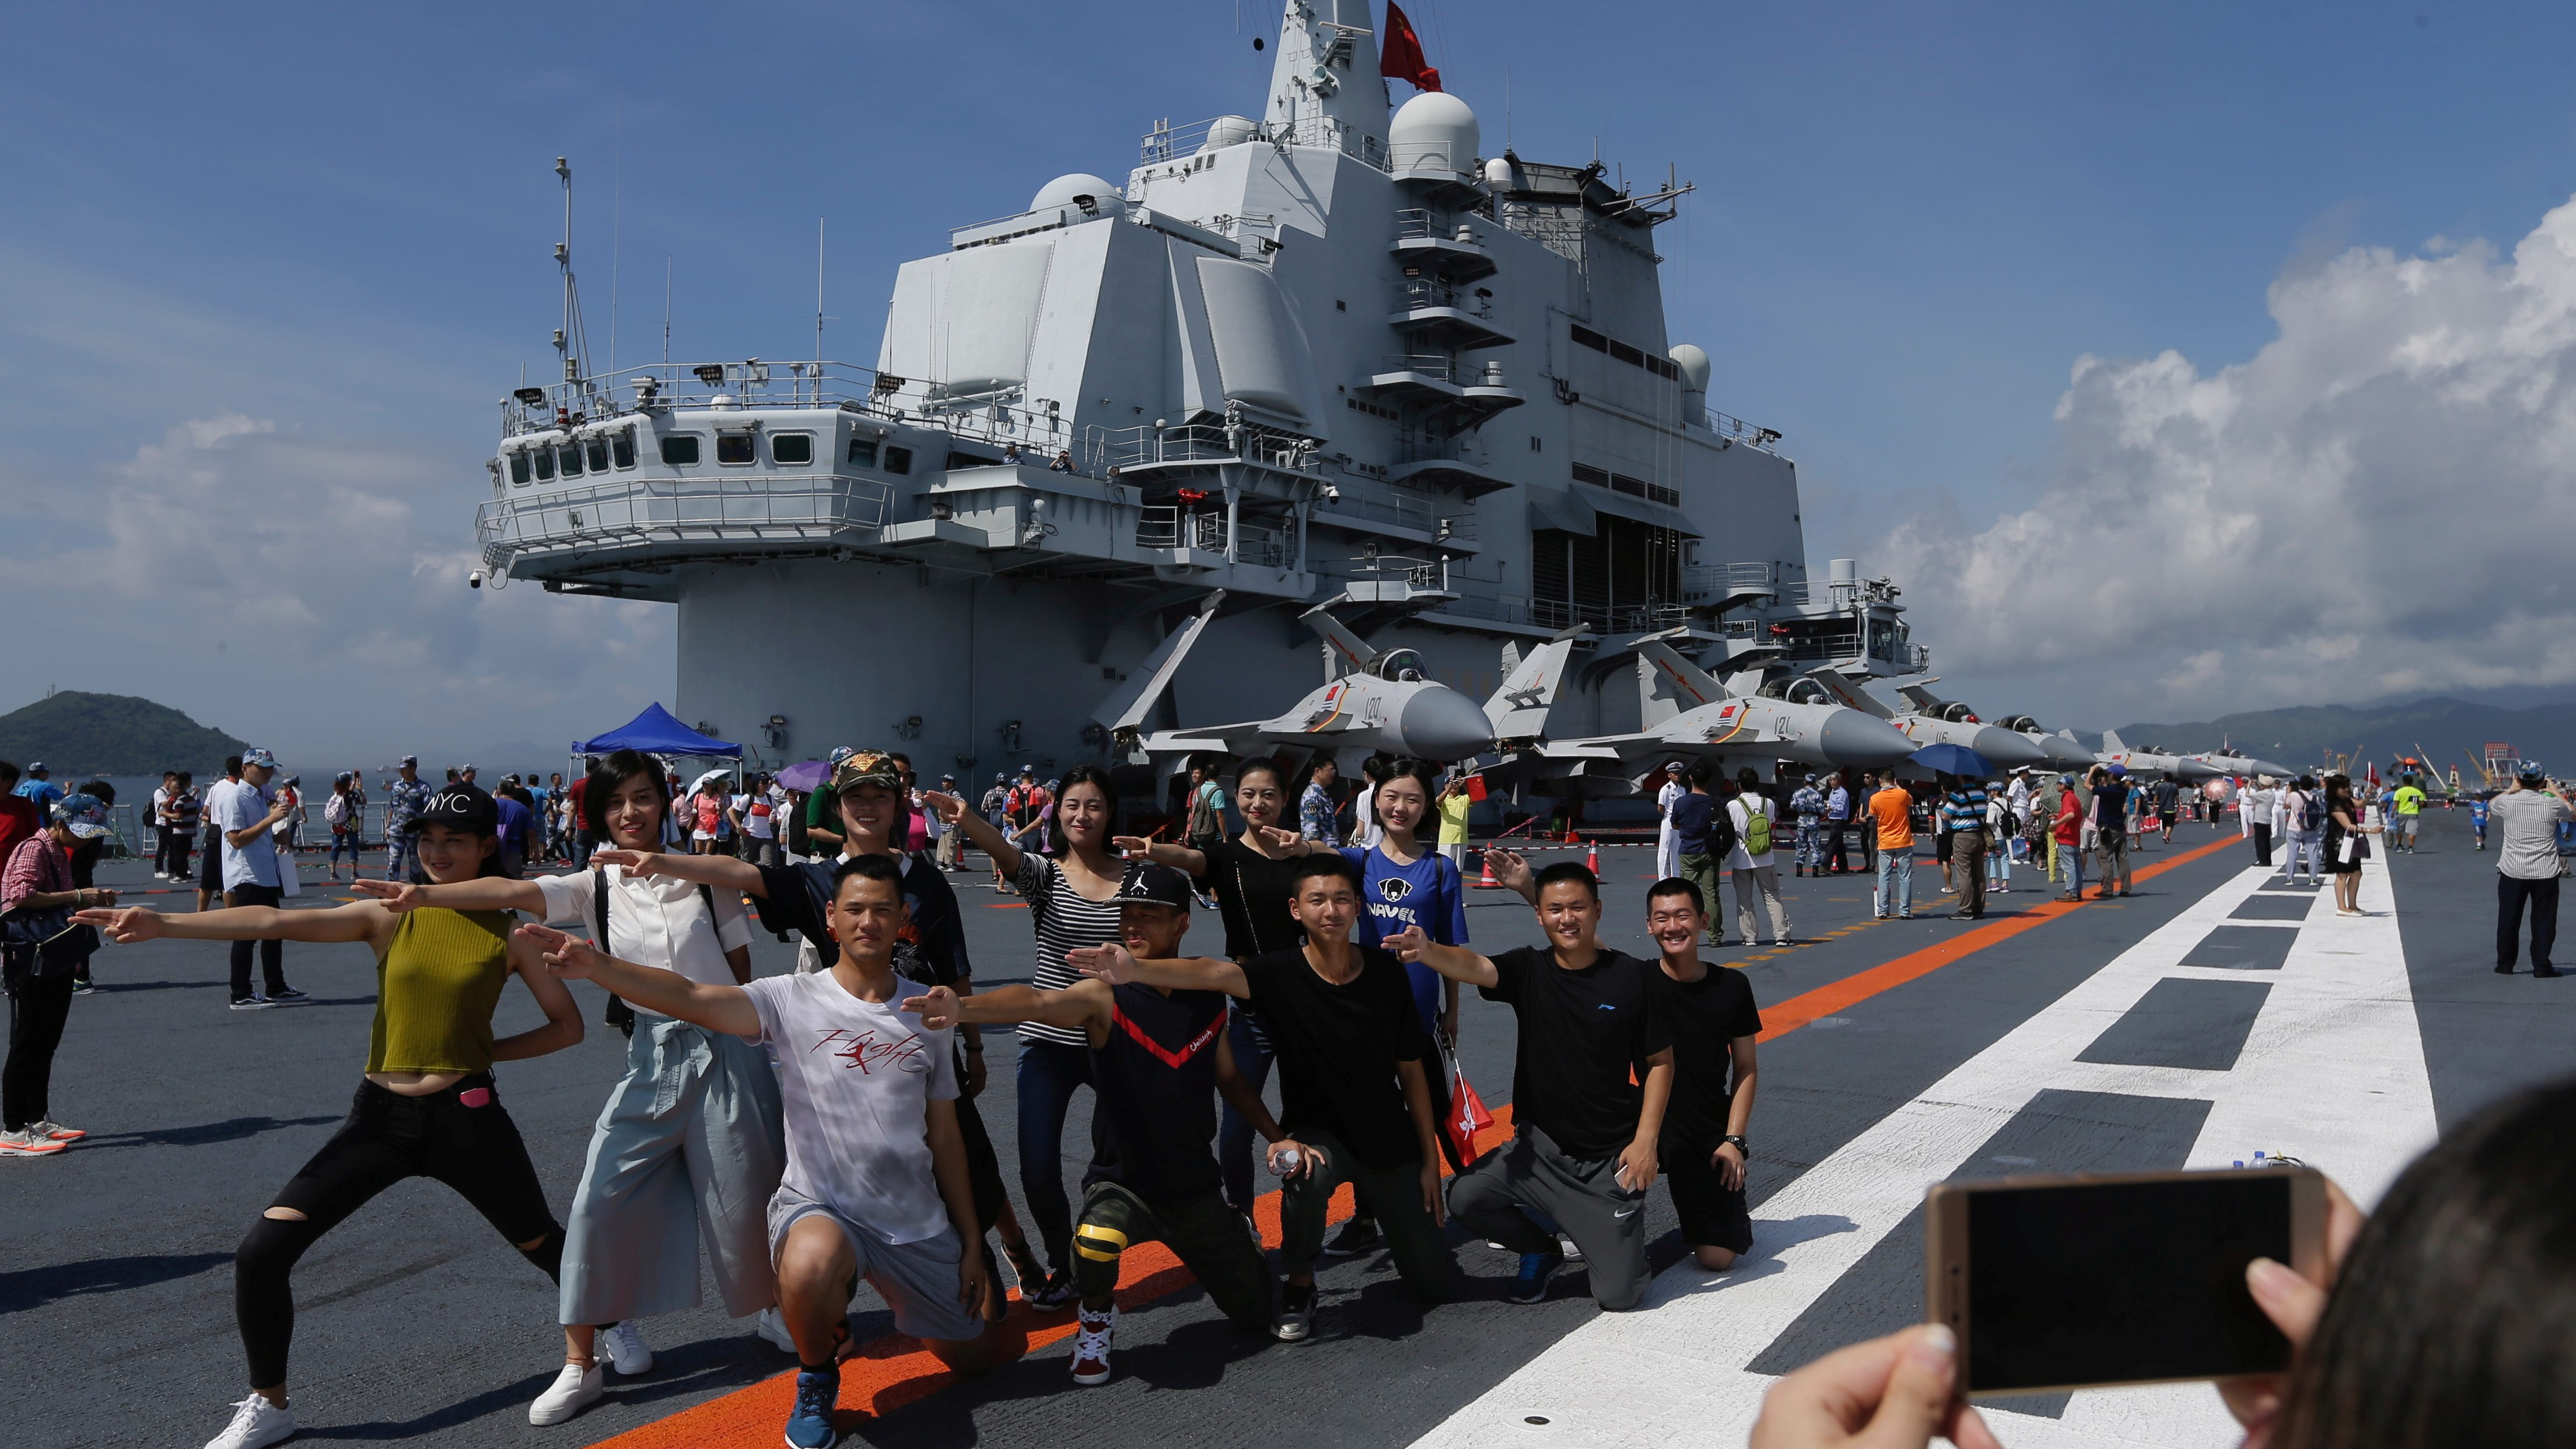 Visitors pose for pictures on China's first aircraft carrier Liaoning during an open day at a naval base in Hong Kong, China, July 9, 2017. Picture taken July 9, 2017.